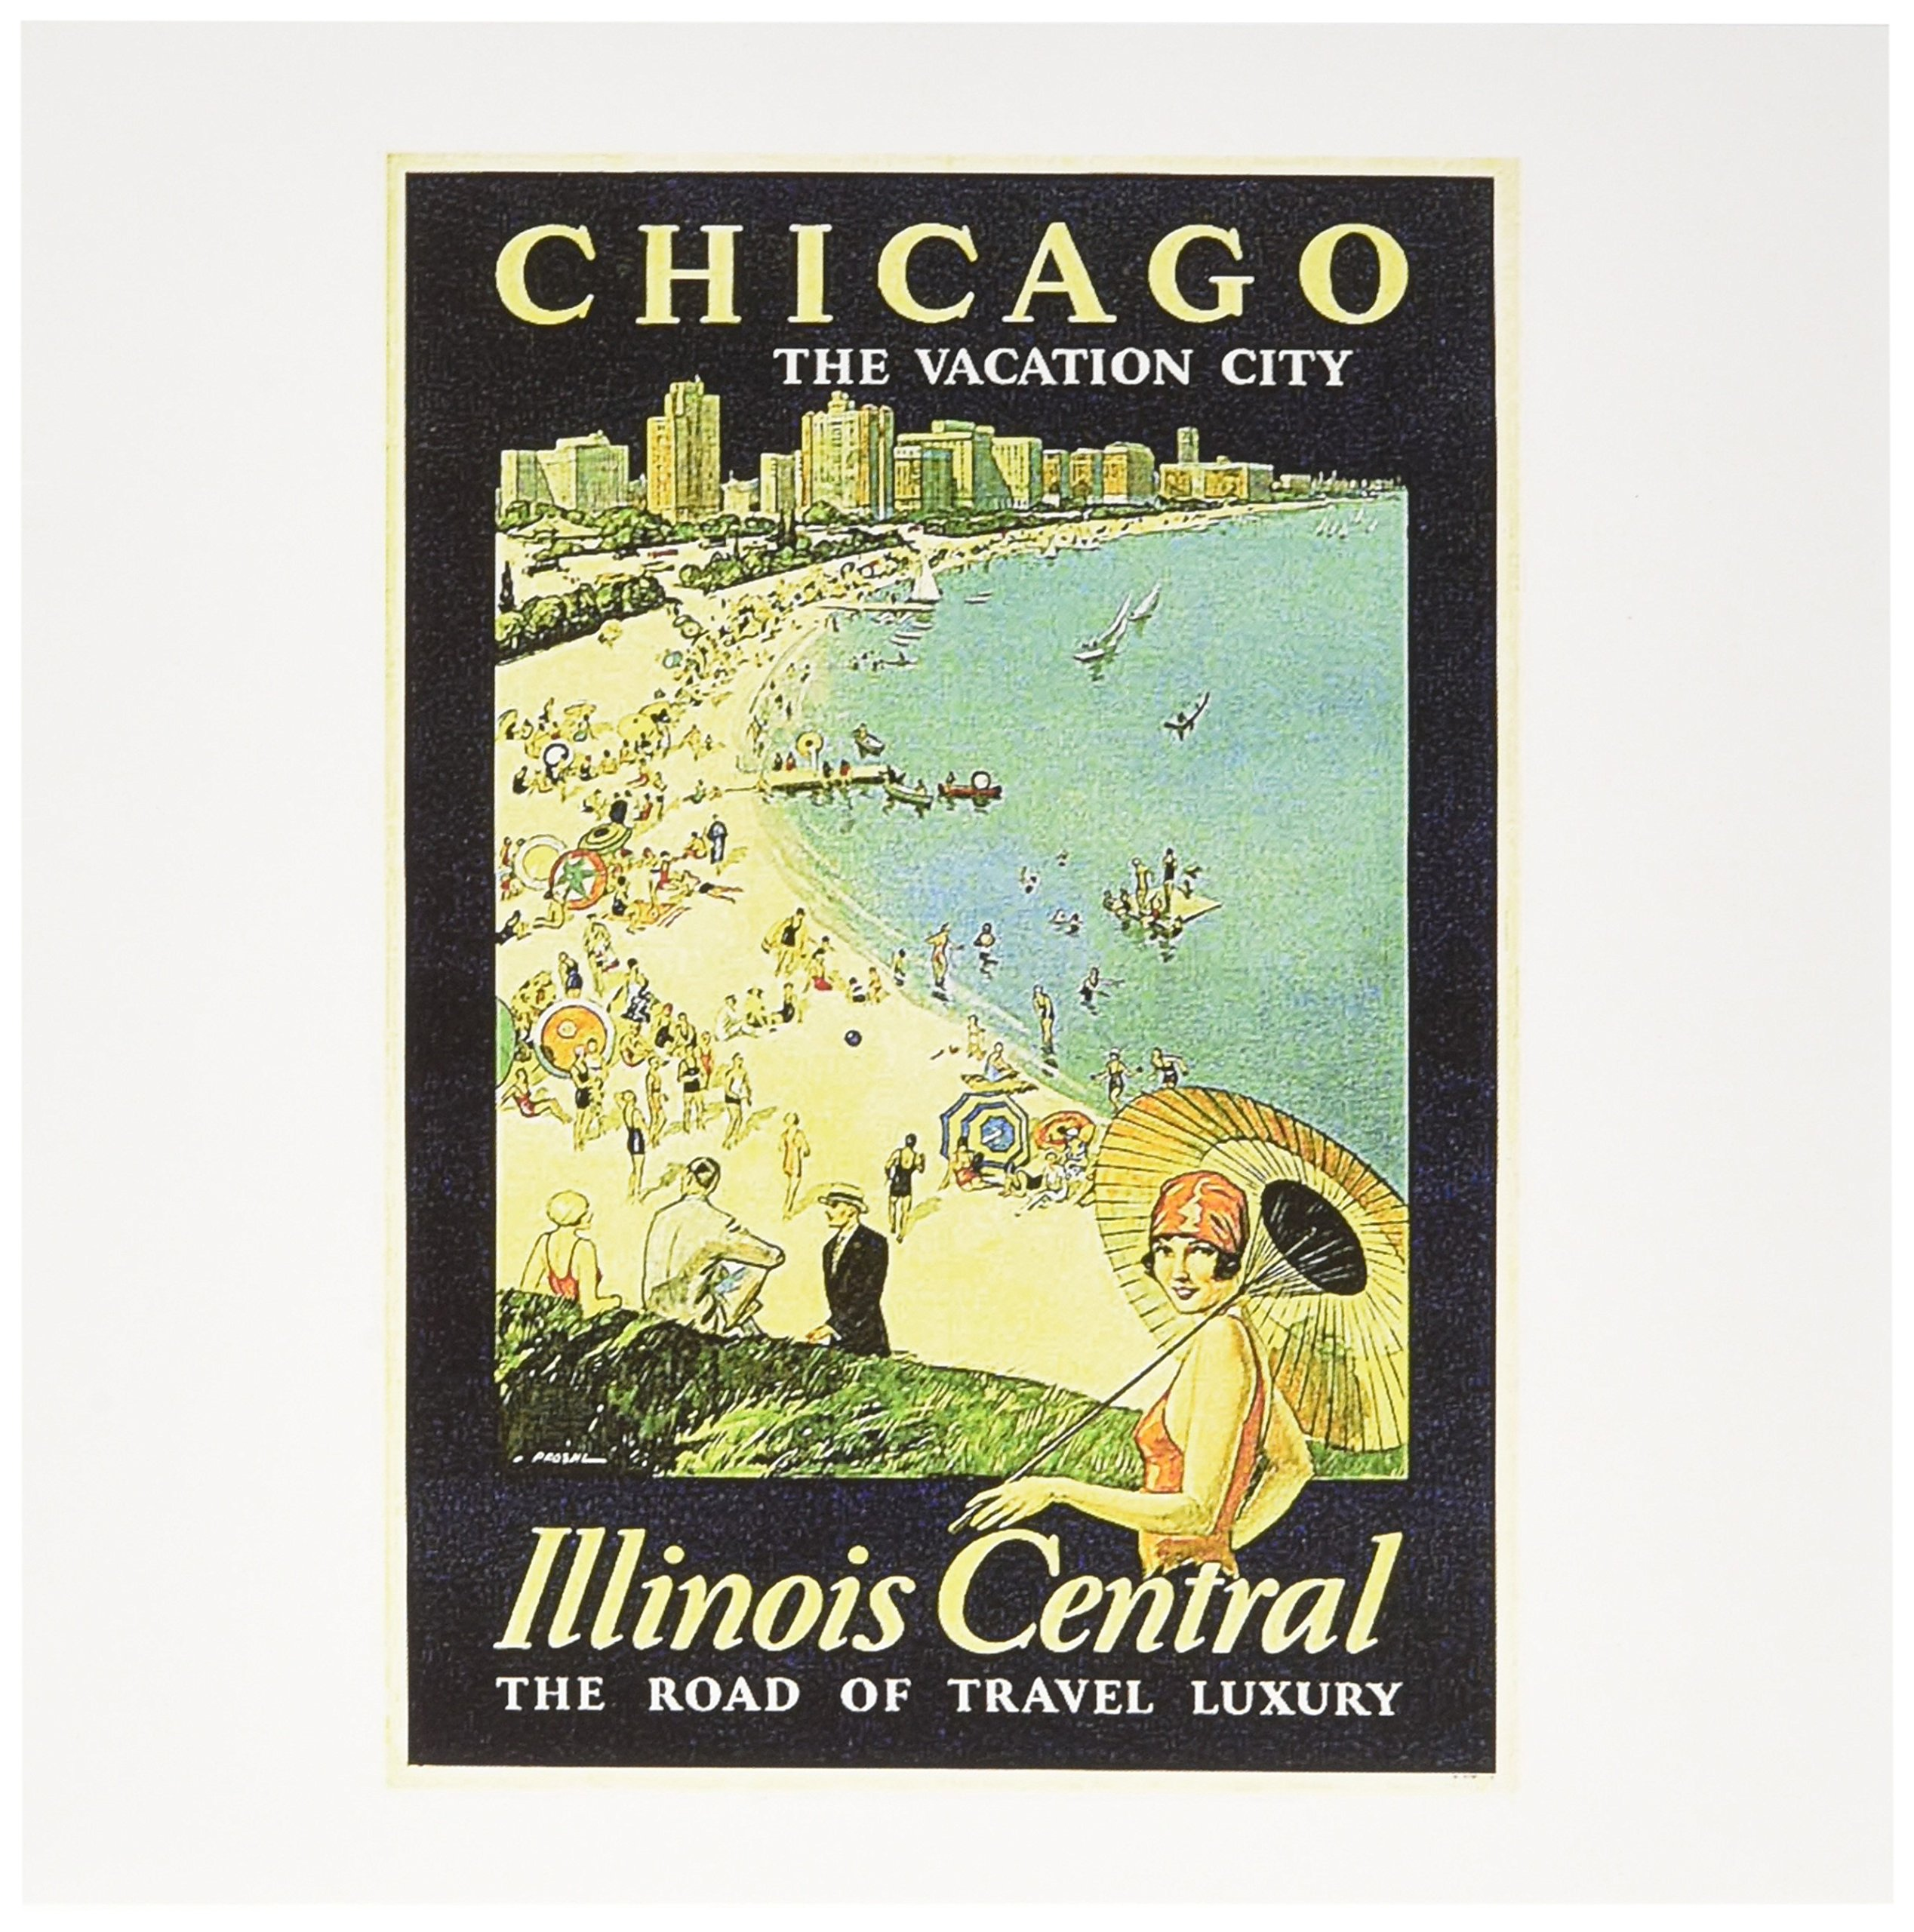 3dRose Vintage Chicago The Vacation City Travel Poster - Greeting Cards, 6 x 6 inches, set of 12 (gc_126038_2)